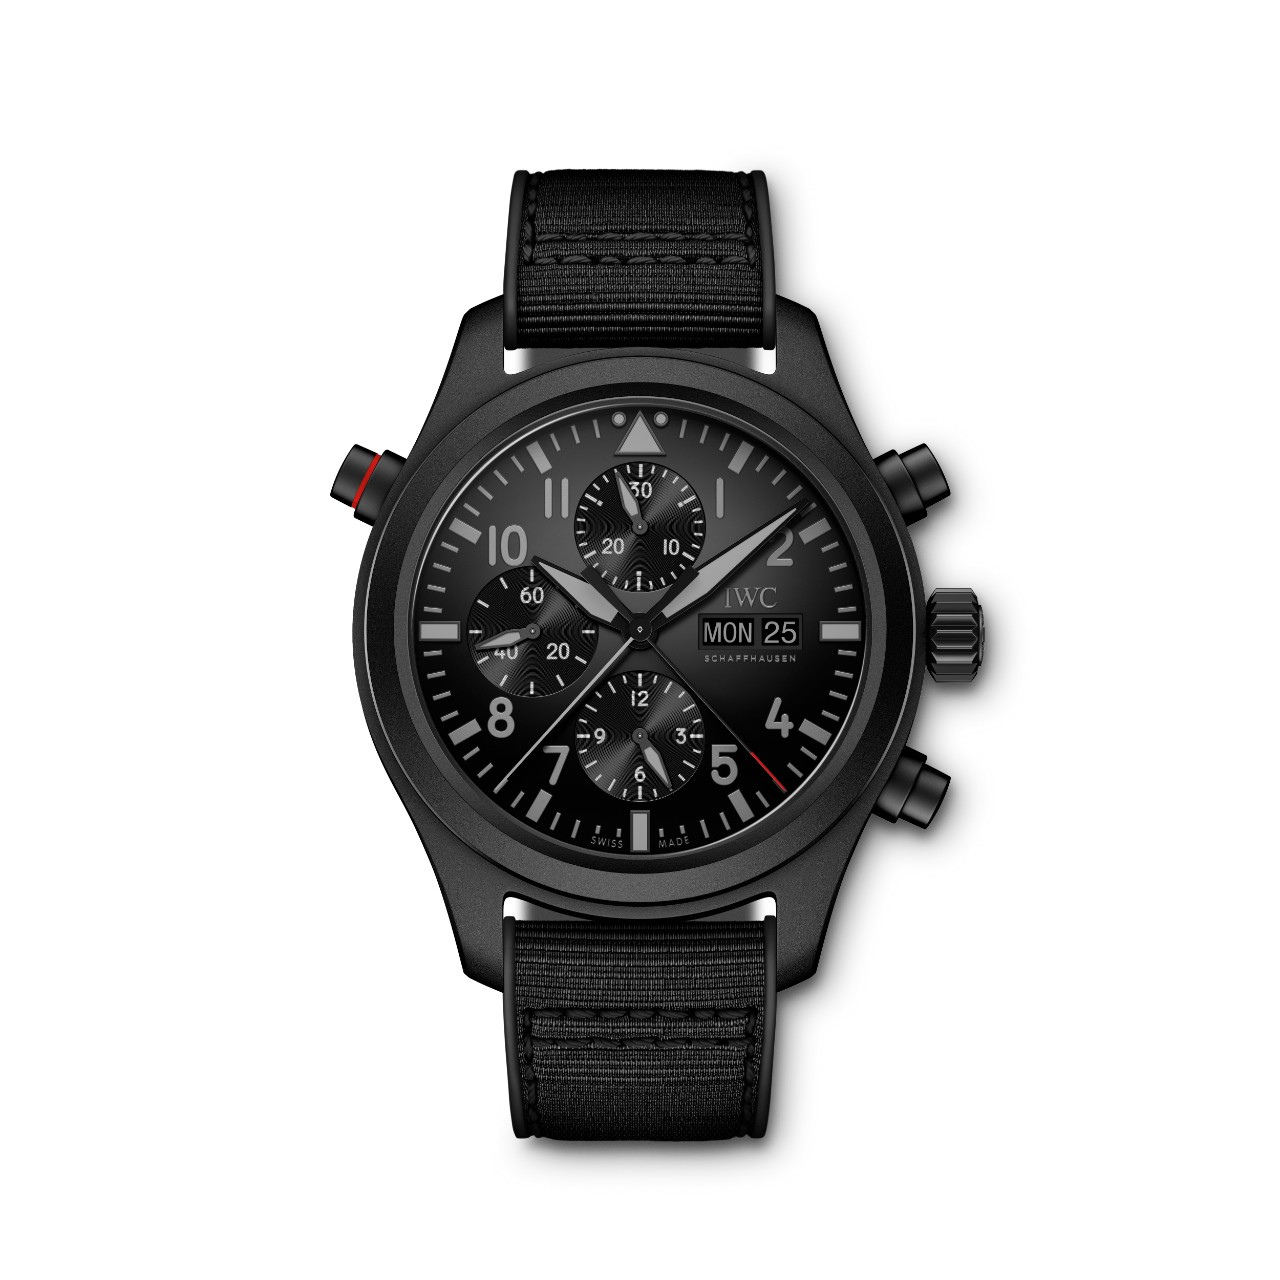 The IWC Double Chronograph Top Gun Ceratanium, with its matching black ceramic finish and black dial.